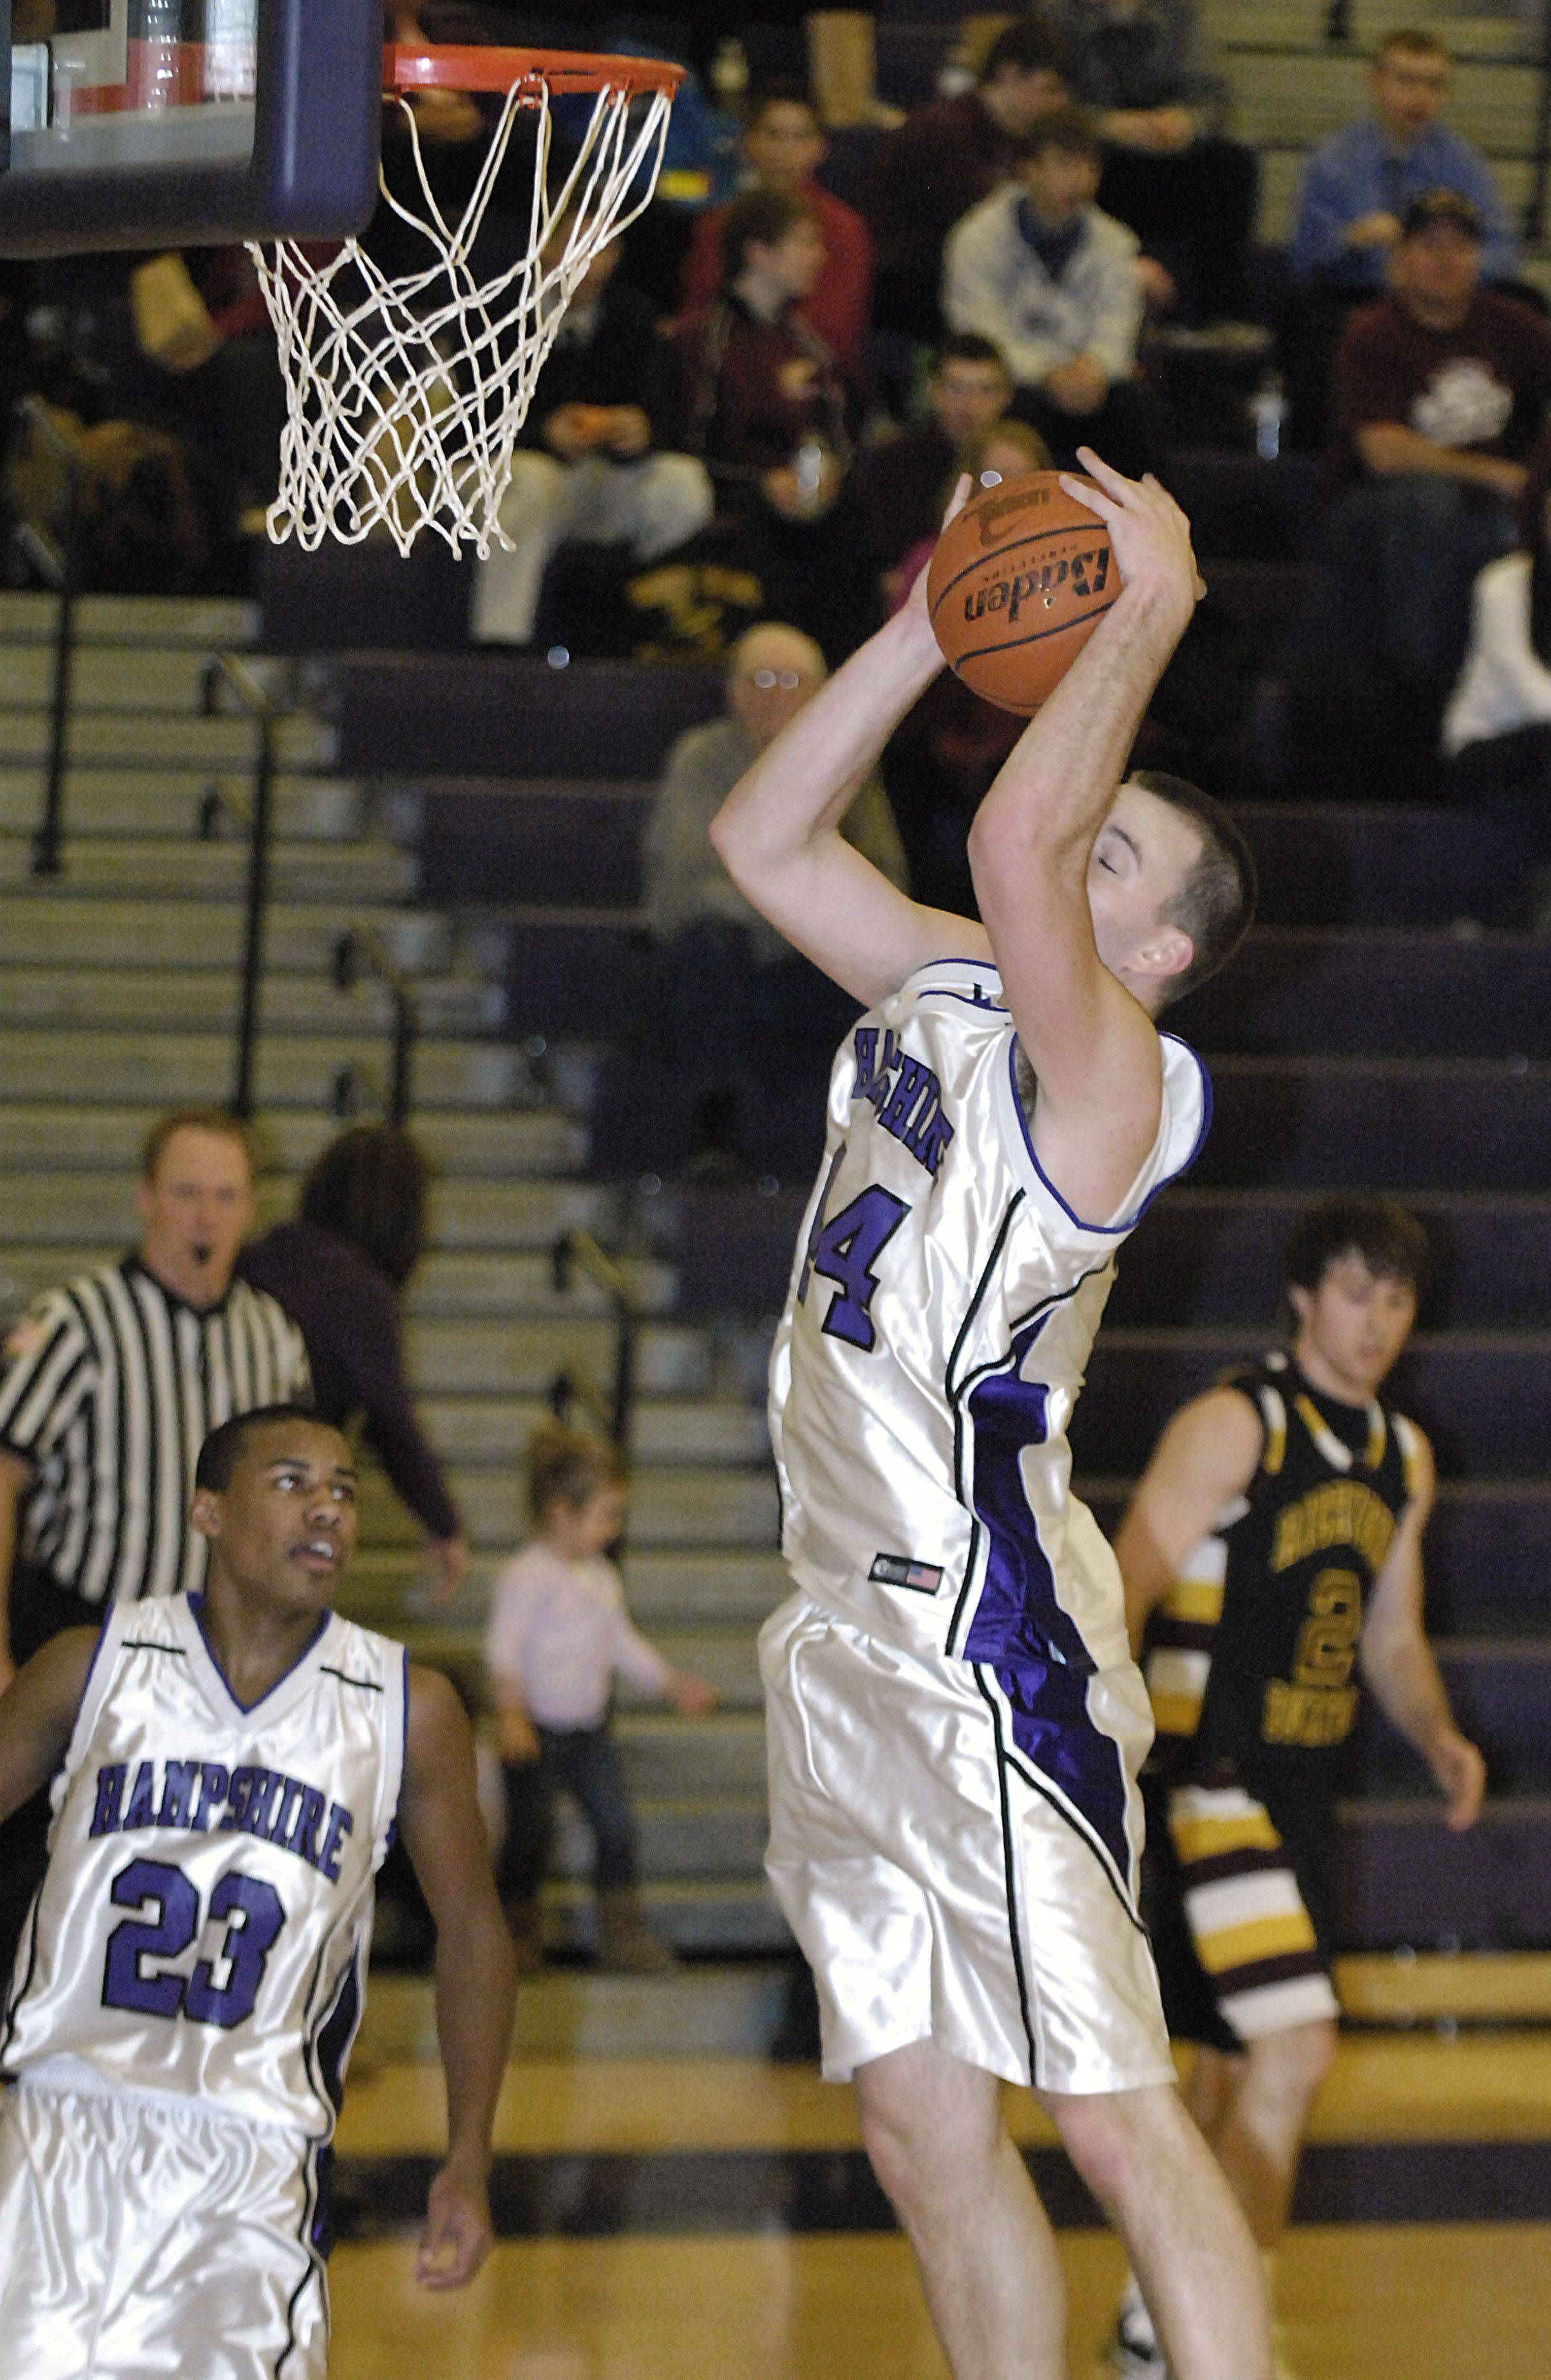 Hampshire's Tyler Watzlawick grabs a rebound in the second quarter of game vs. Richmond on Saturday, January 8.